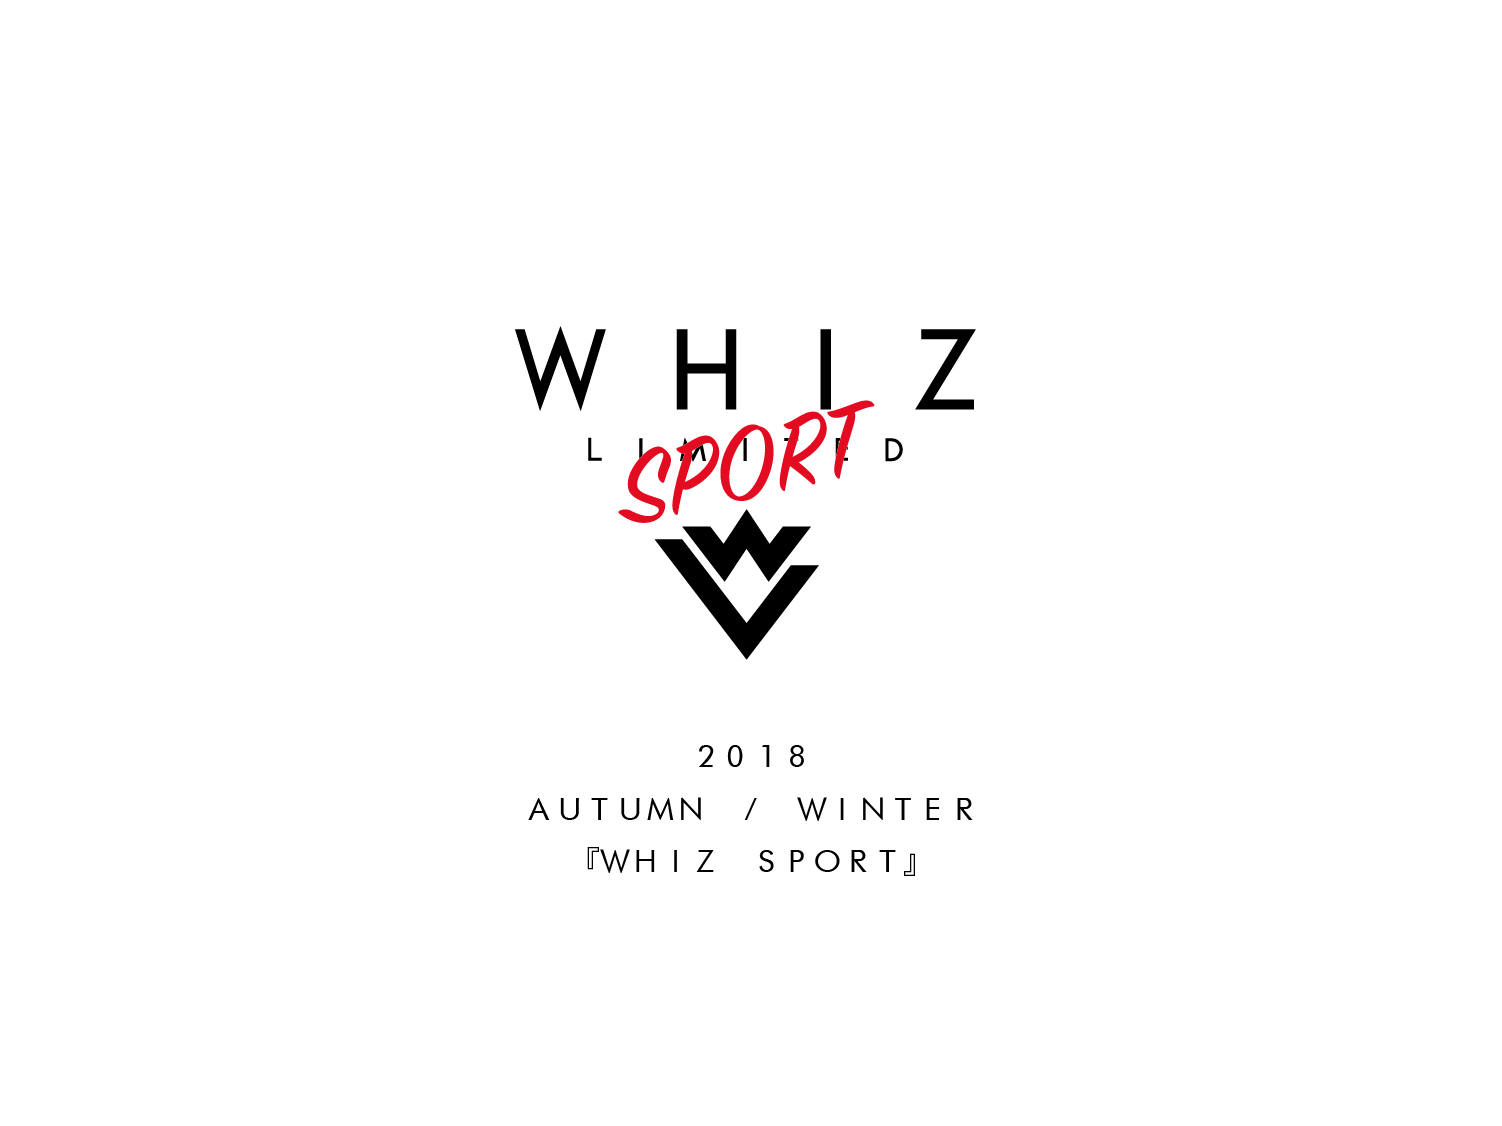 WHIZ LIMITED 2018 AW COLLECTION / WHIZ SPORT